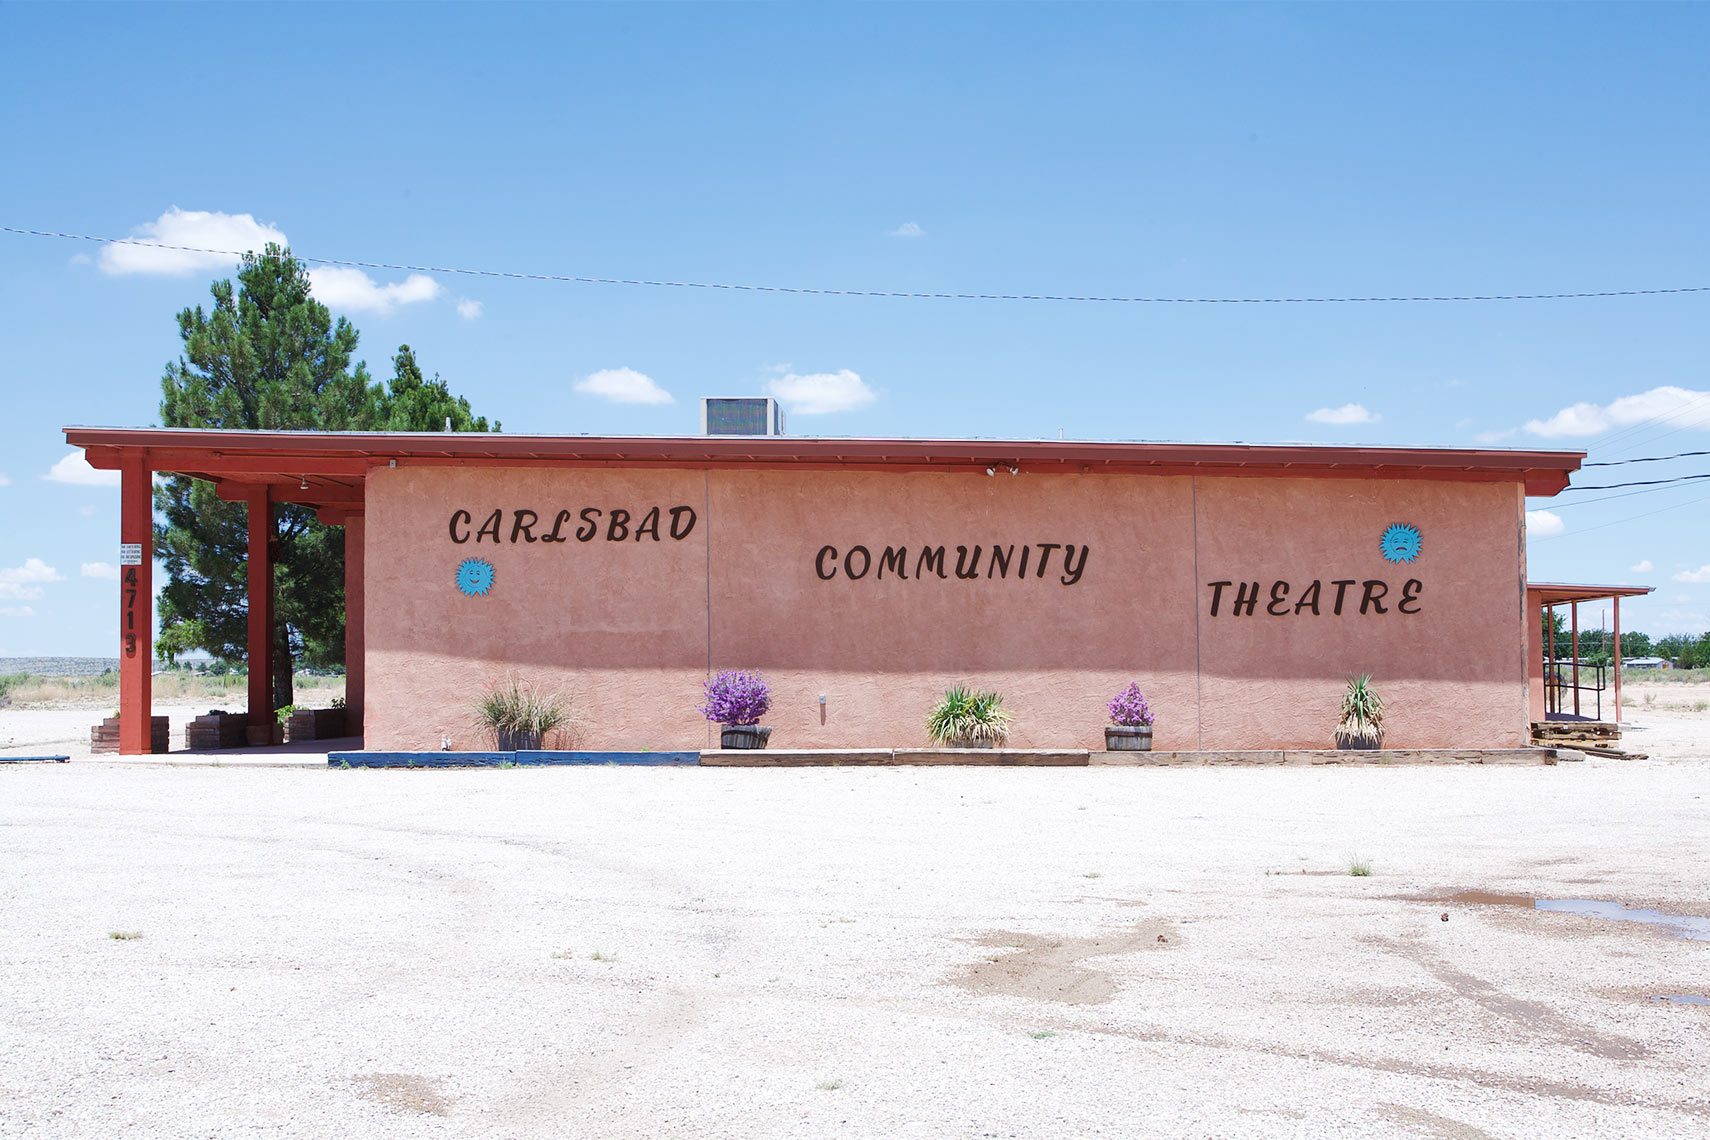 CARLSBAD, NEW MEXICO